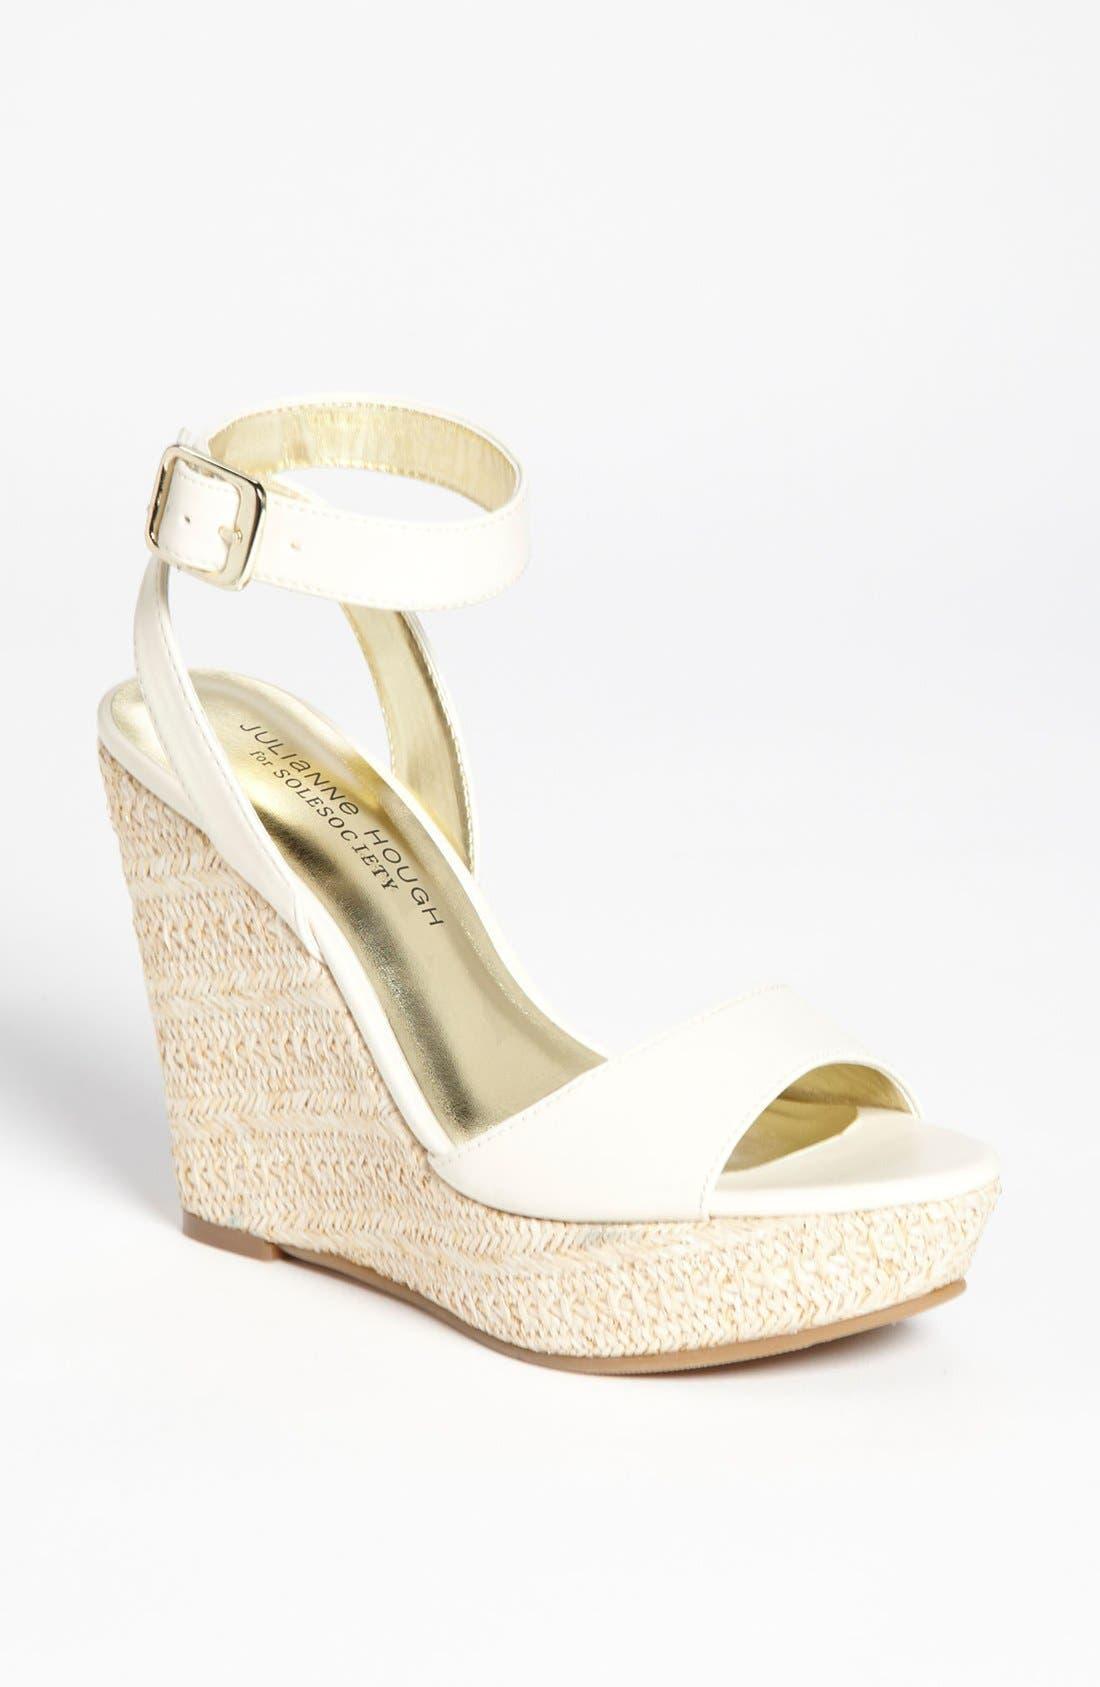 Main Image - Julianne Hough for Sole Society 'Adrienne' Wedge Sandal